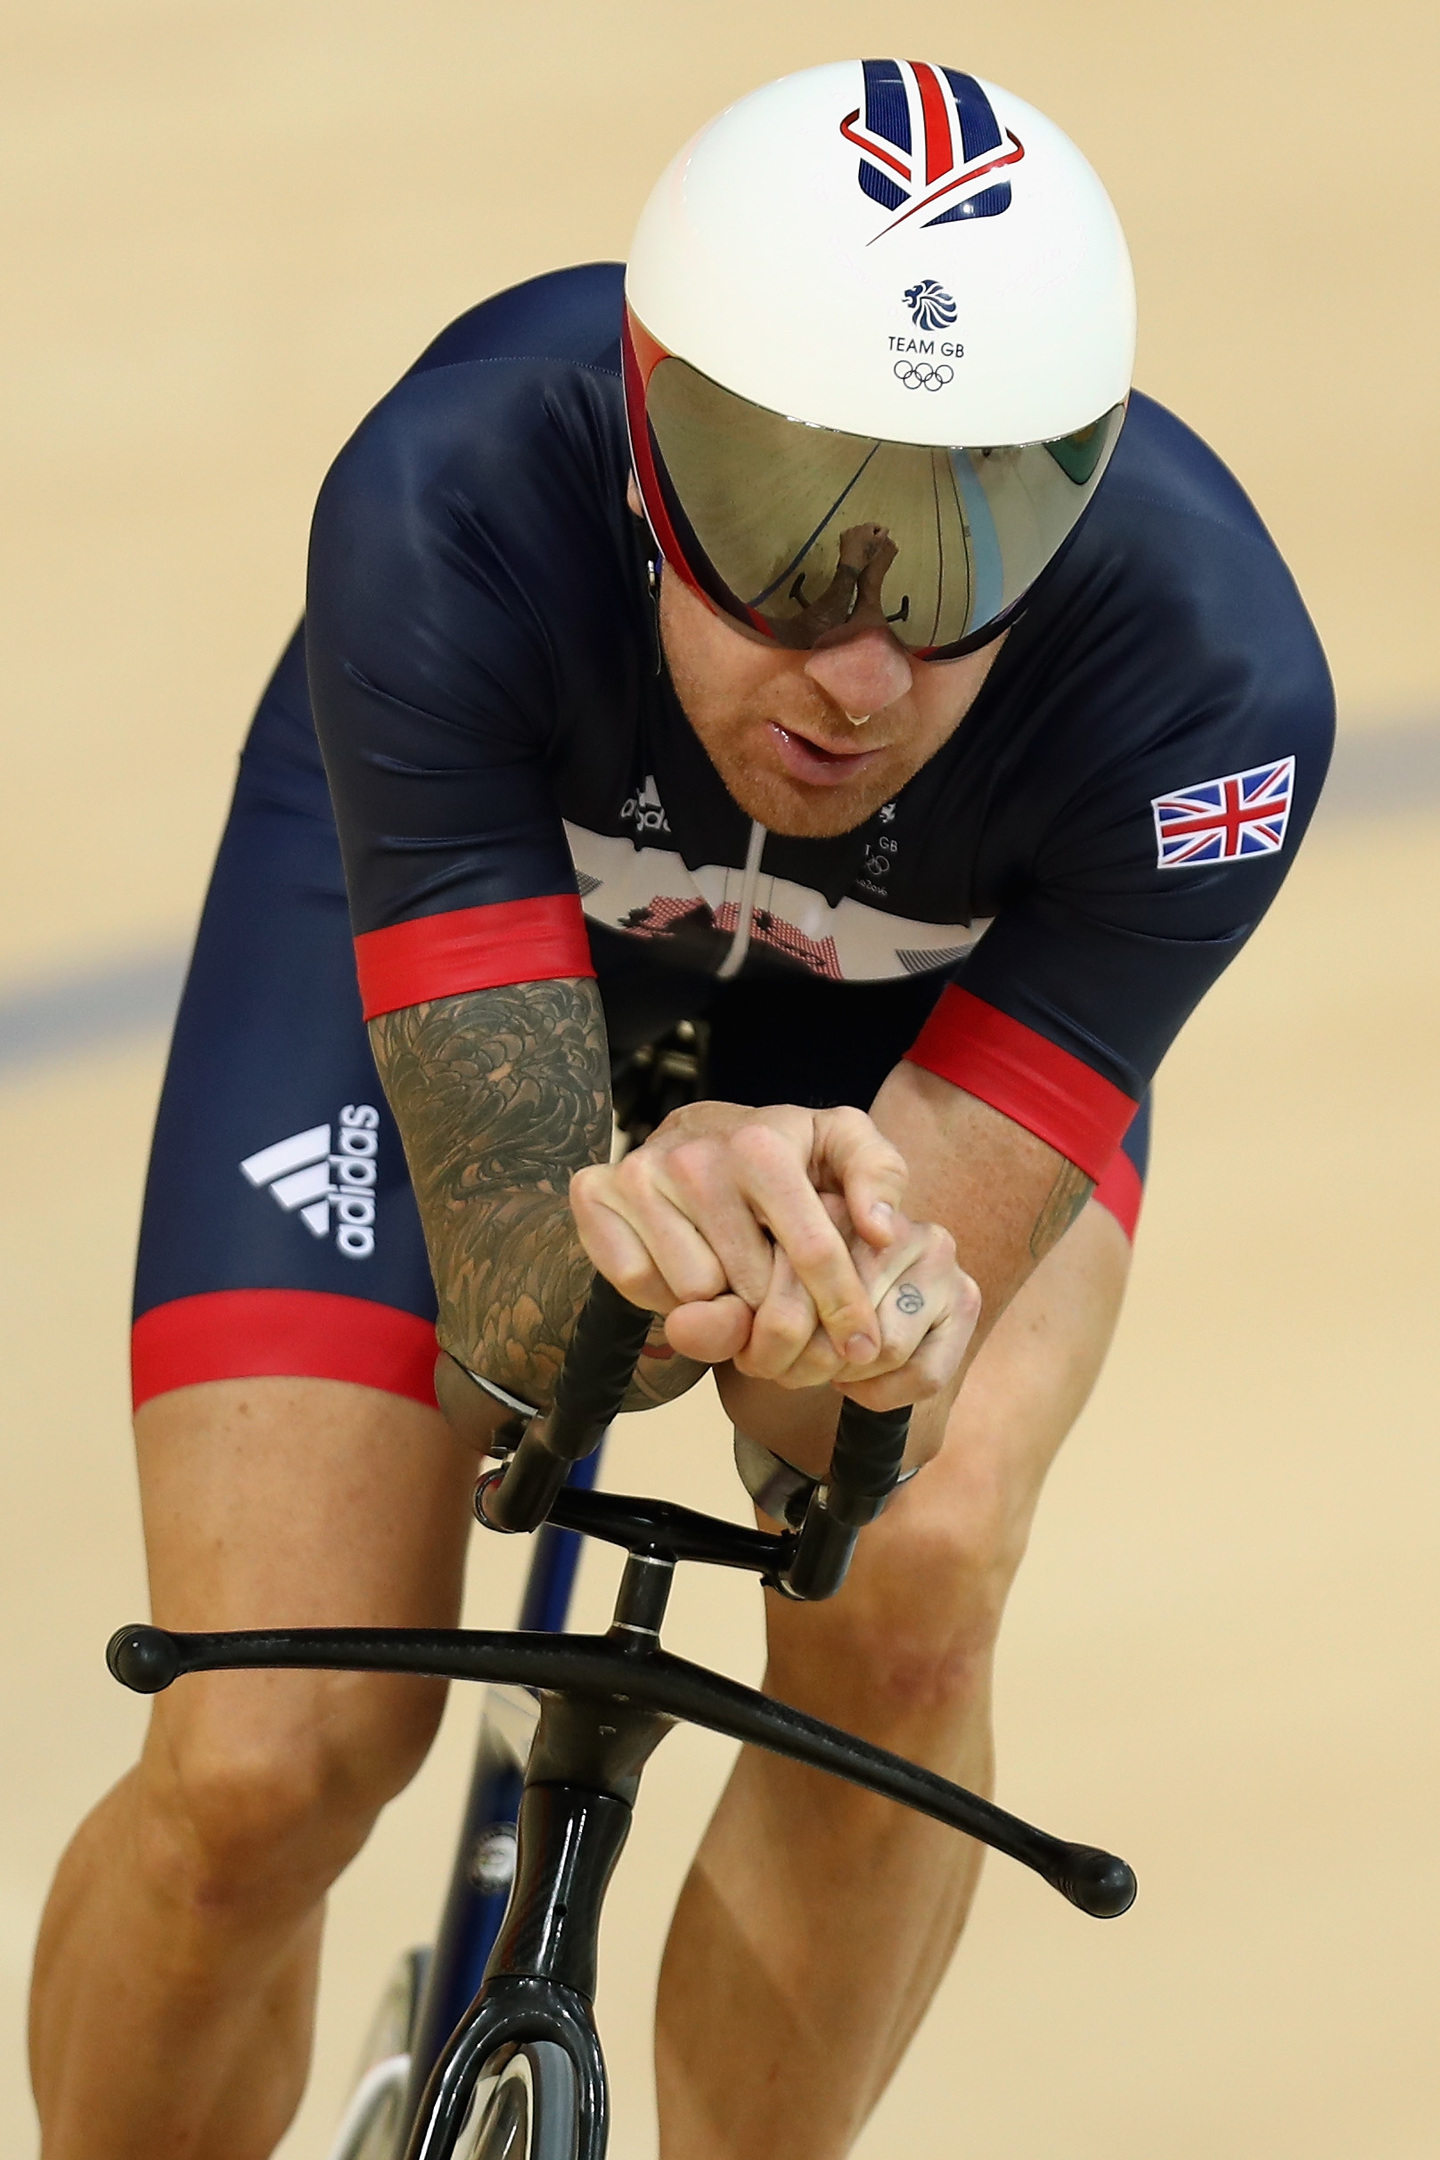 Sir Bradley Wiggins of Great Britain and Team GB in action during training at the Rio Olympic Velodrome (Photo by Bryn Lennon/Getty Images)